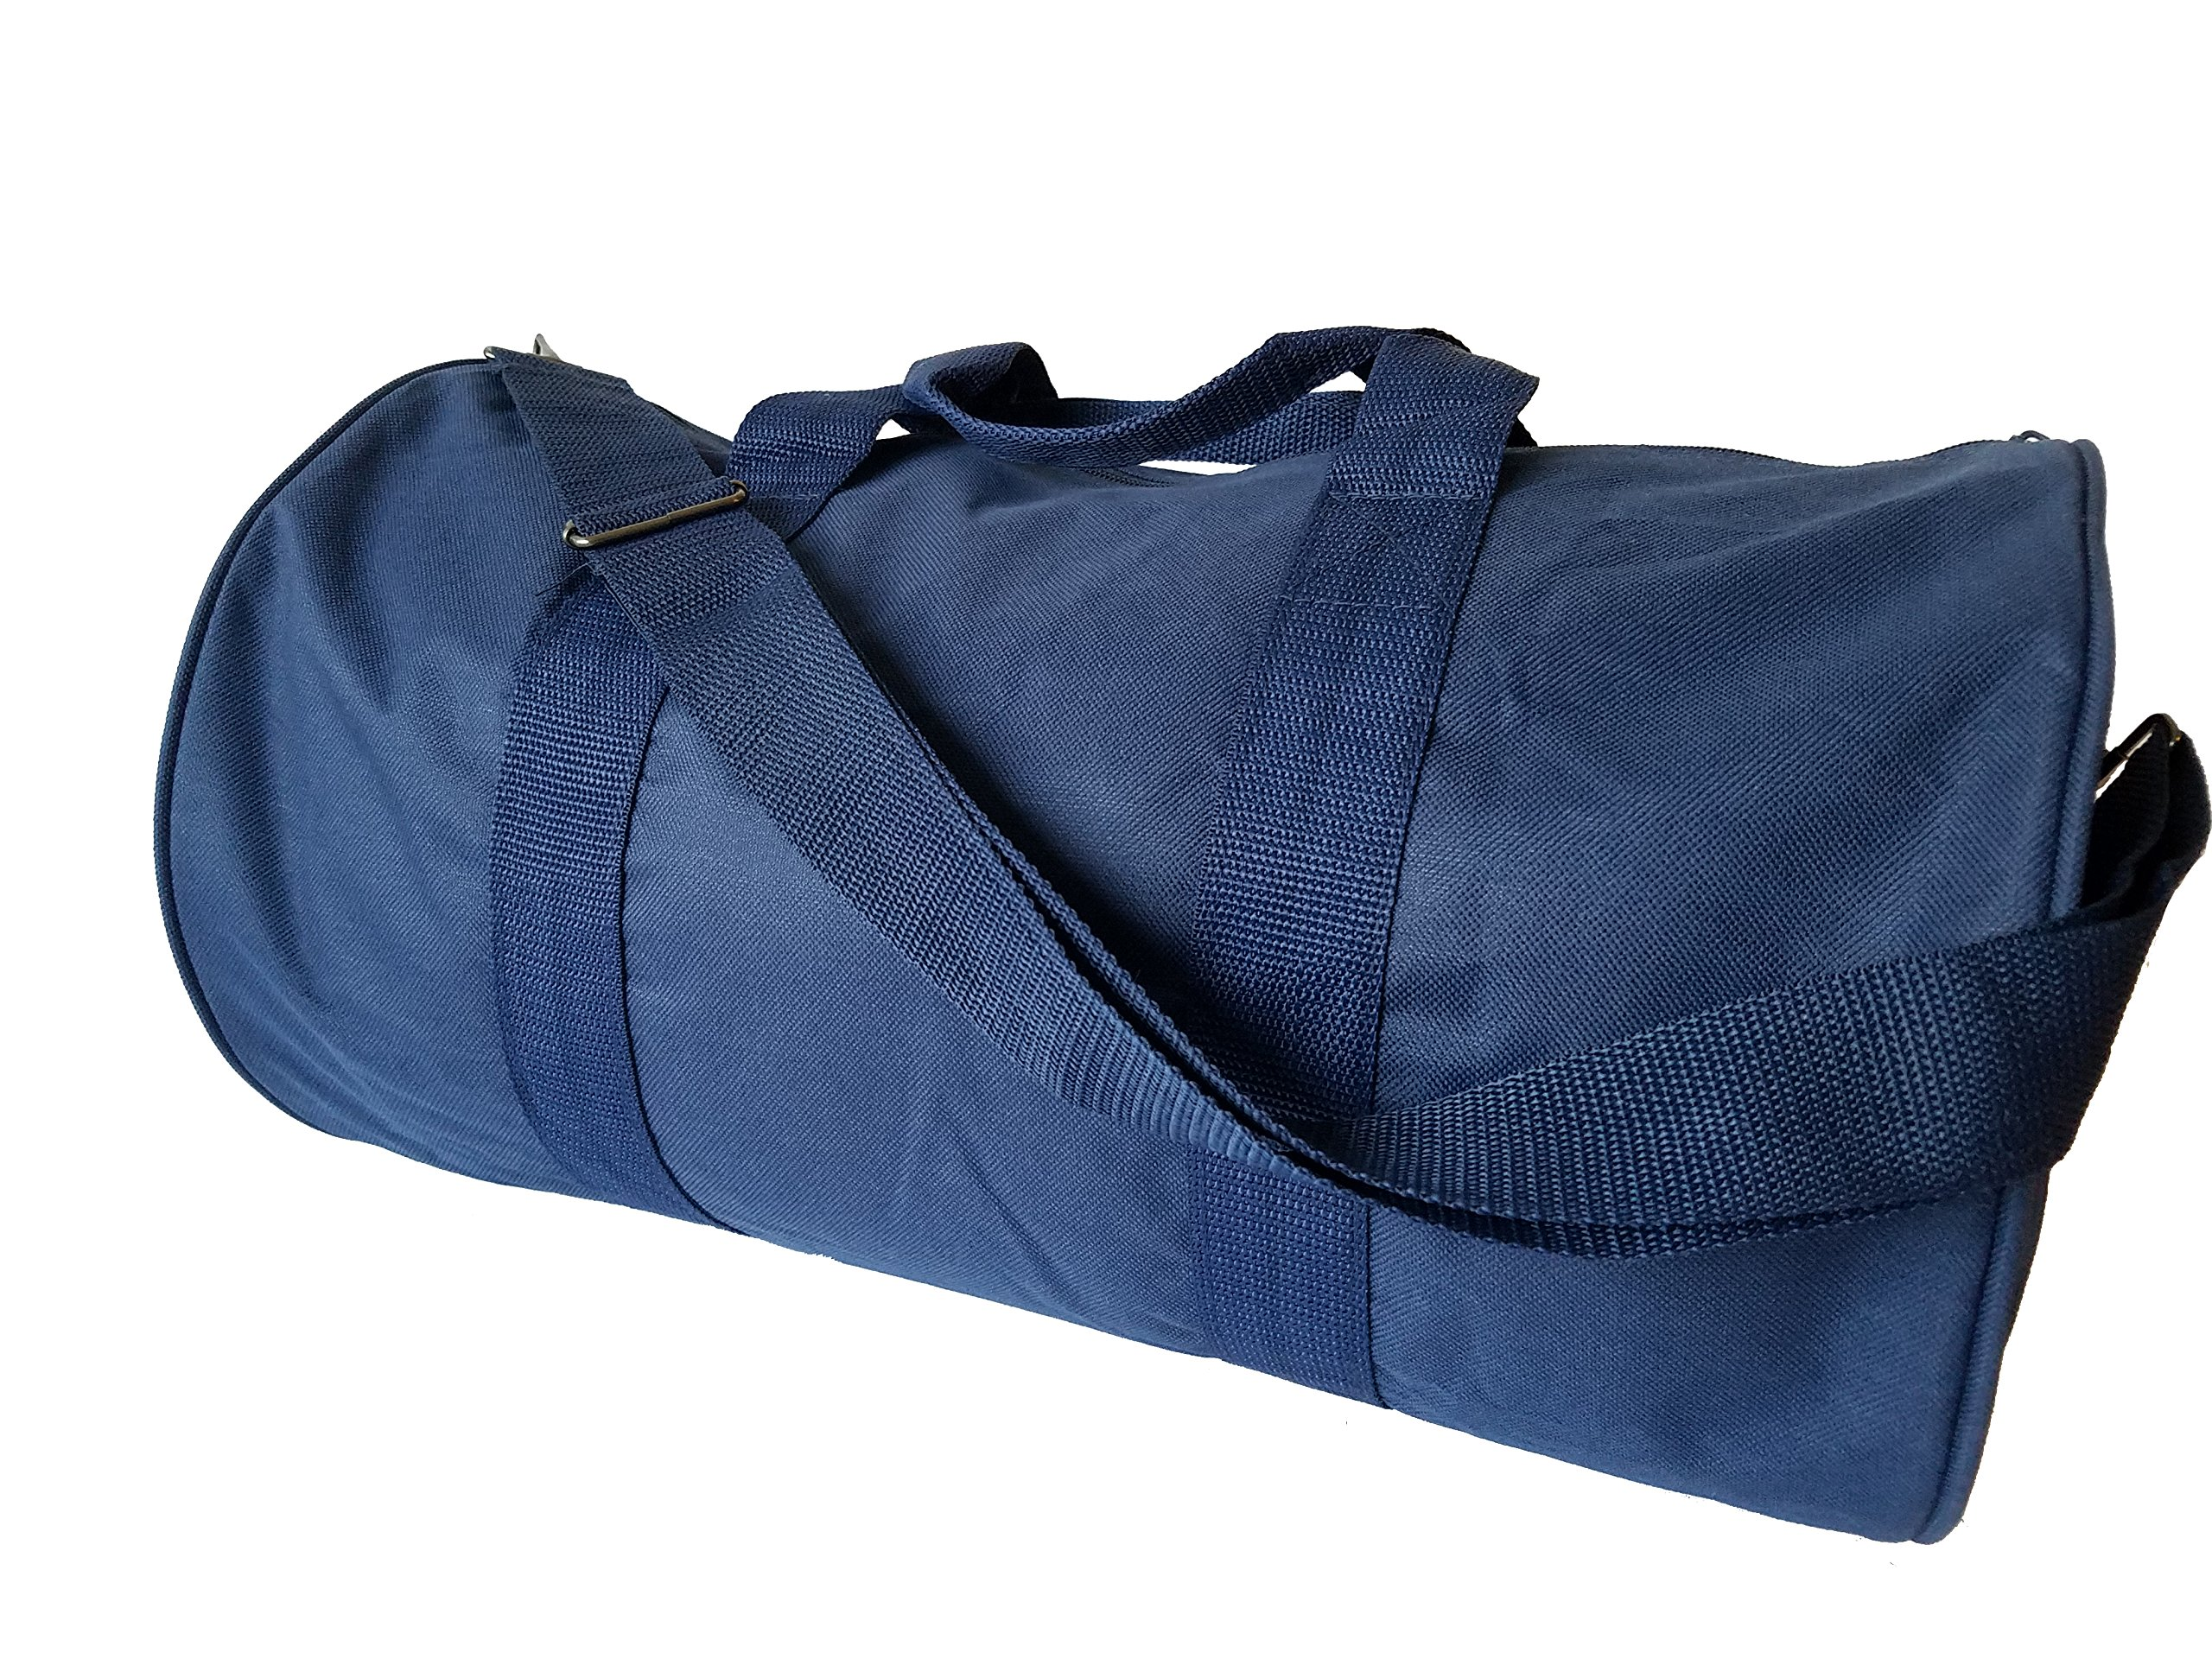 ImpecGear Round Duffel Sports Bags, Travel Gym Fitness Bag. (Navy) by ImpecGear (Image #5)